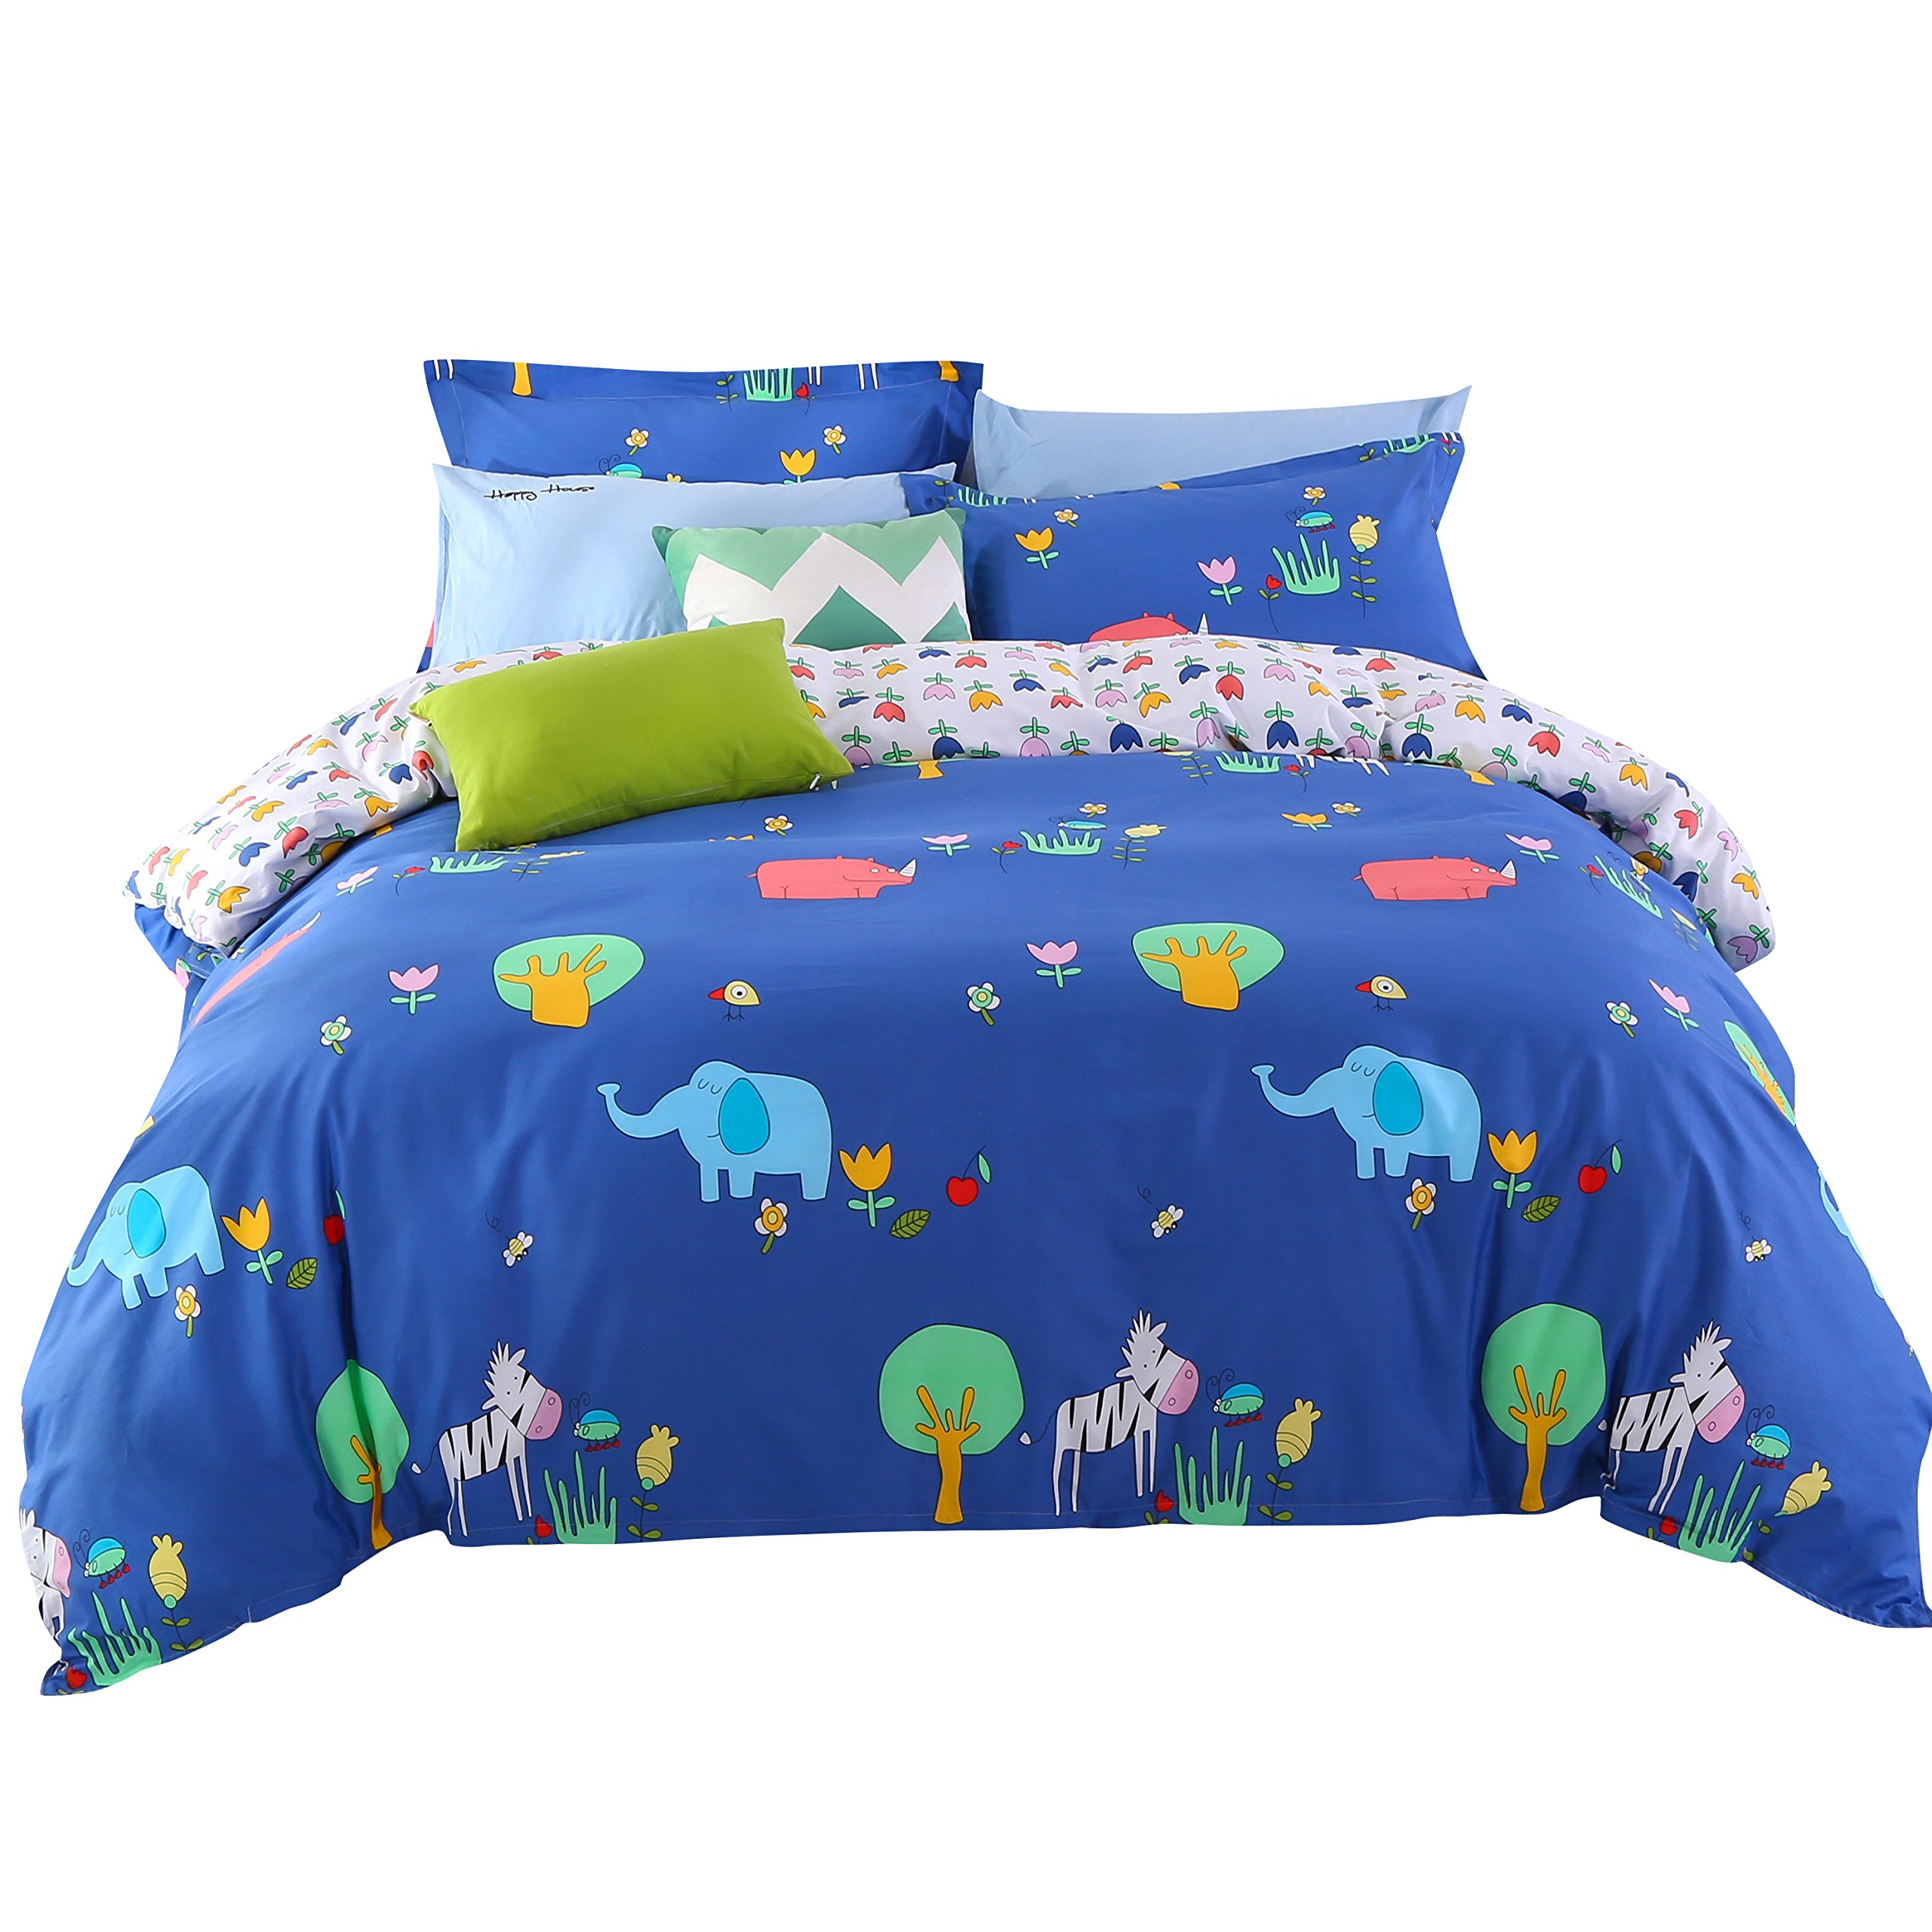 Wowelife Kids Bedding Sets Elephant Pattern Blue 4 Pieces with 100% Cotton,Ultra Soft and Easy Care for Boys and Girls(Comforter Not Included)(Party Time, Queen)